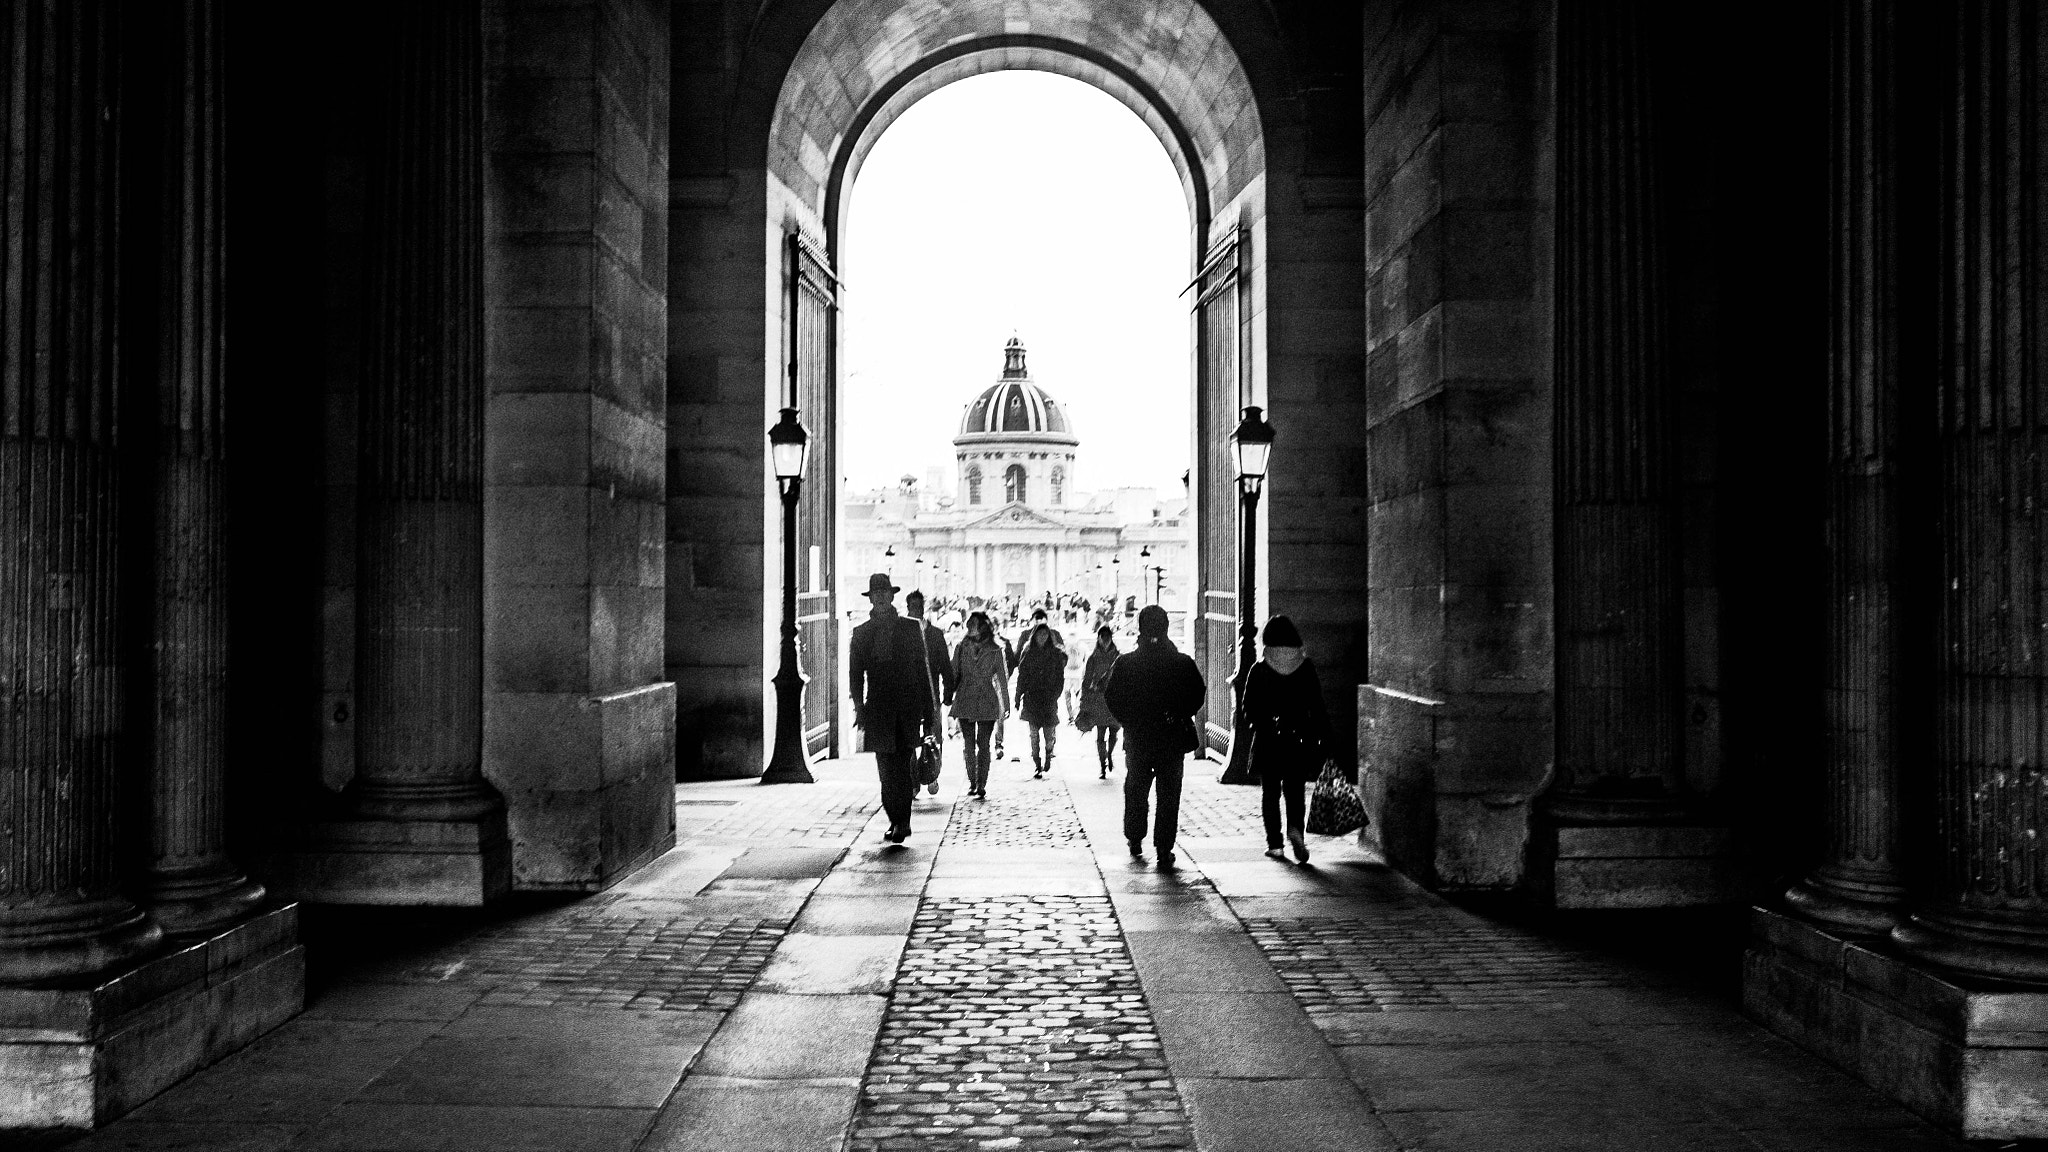 Photograph Untitled by Mathieu Quehen on 500px